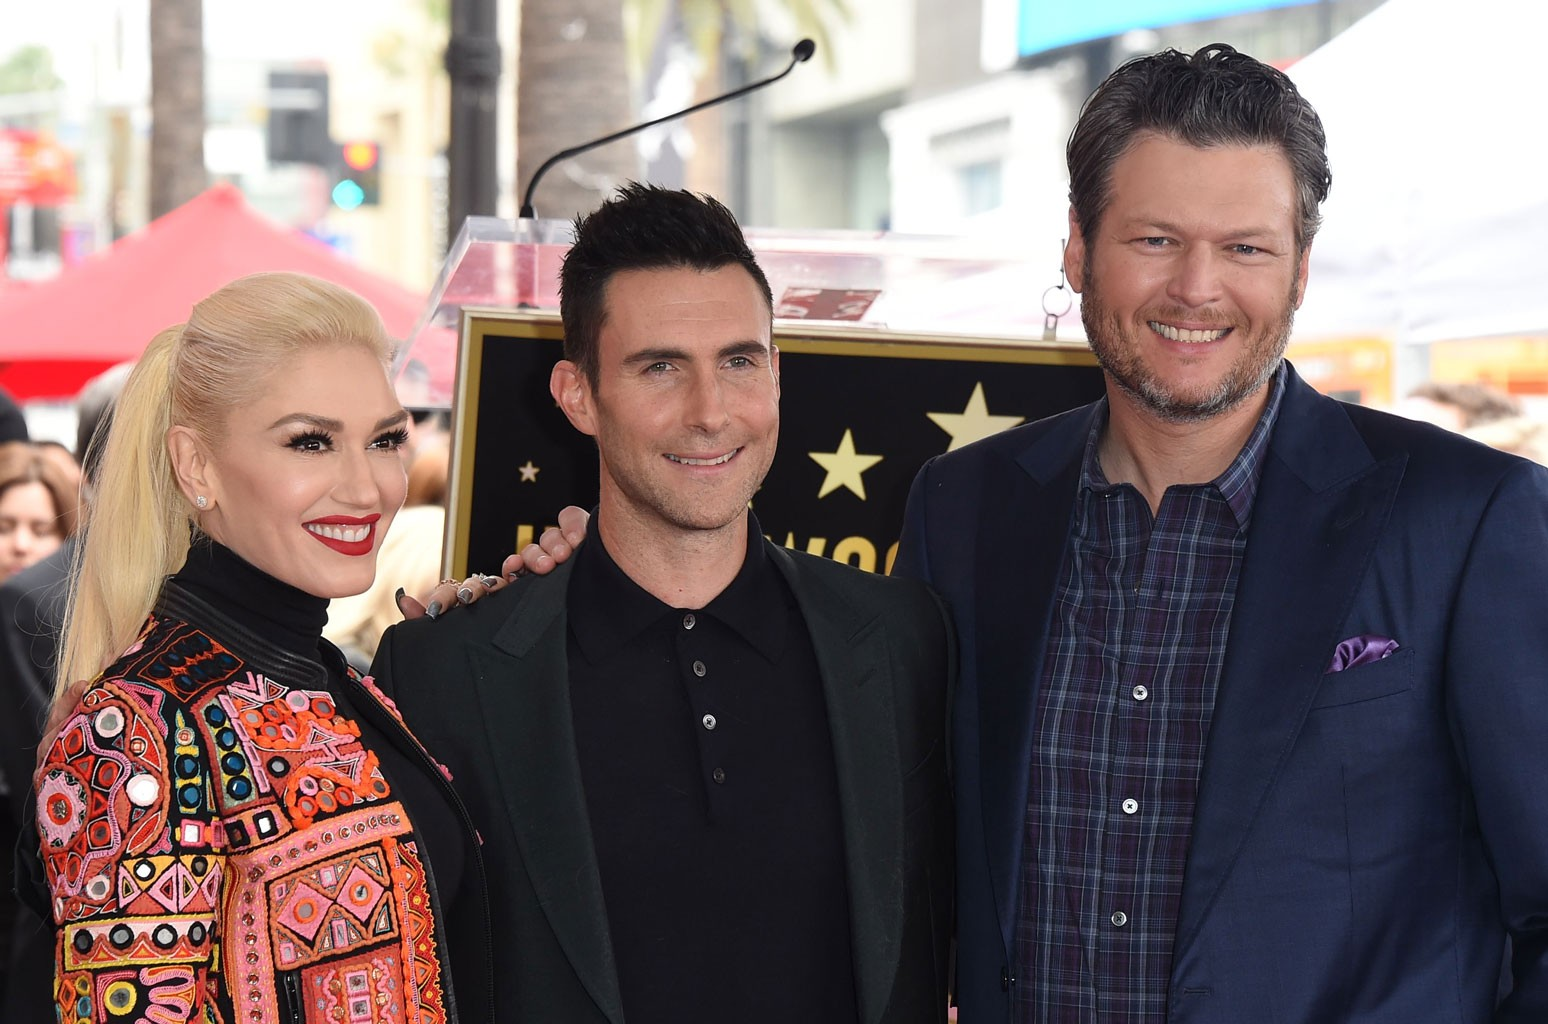 gwen-stefani-reveals-the-real-reason-why-adam-levine-will-not-perform-at-her-and-blake-sheltons-wedding